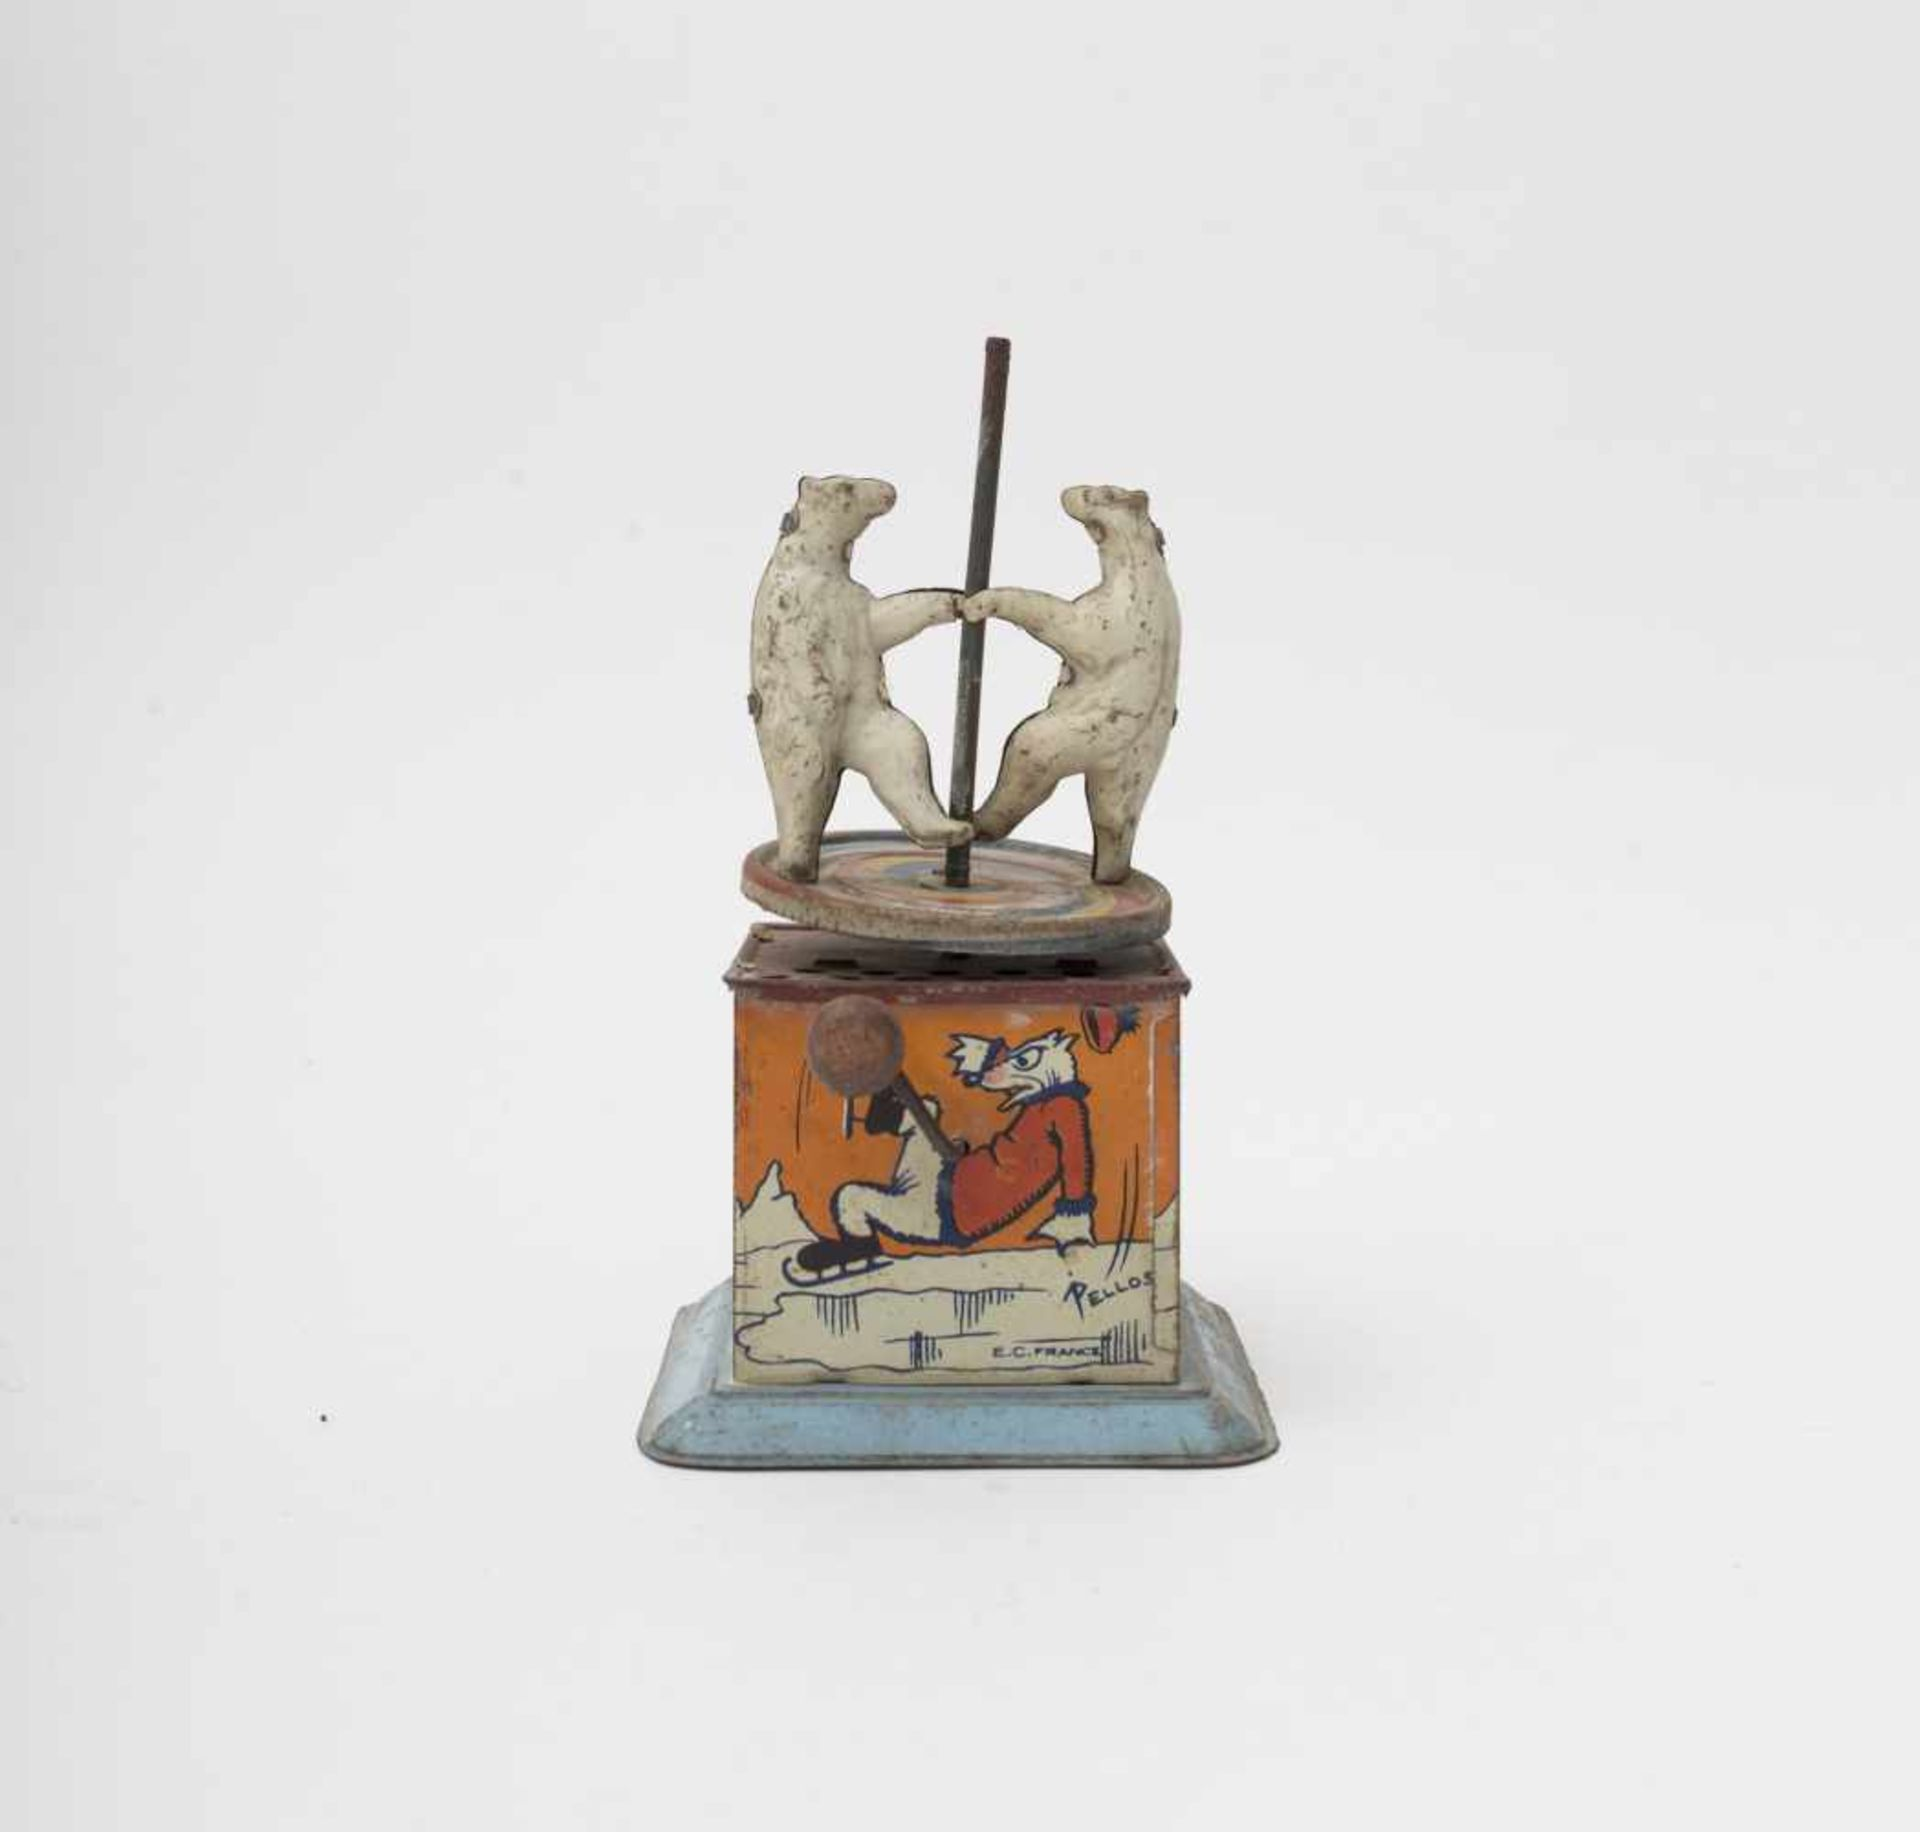 Lithographed metal toy Rattle-style depicting two dancing bears with PELLOS illustration, H=19cm.